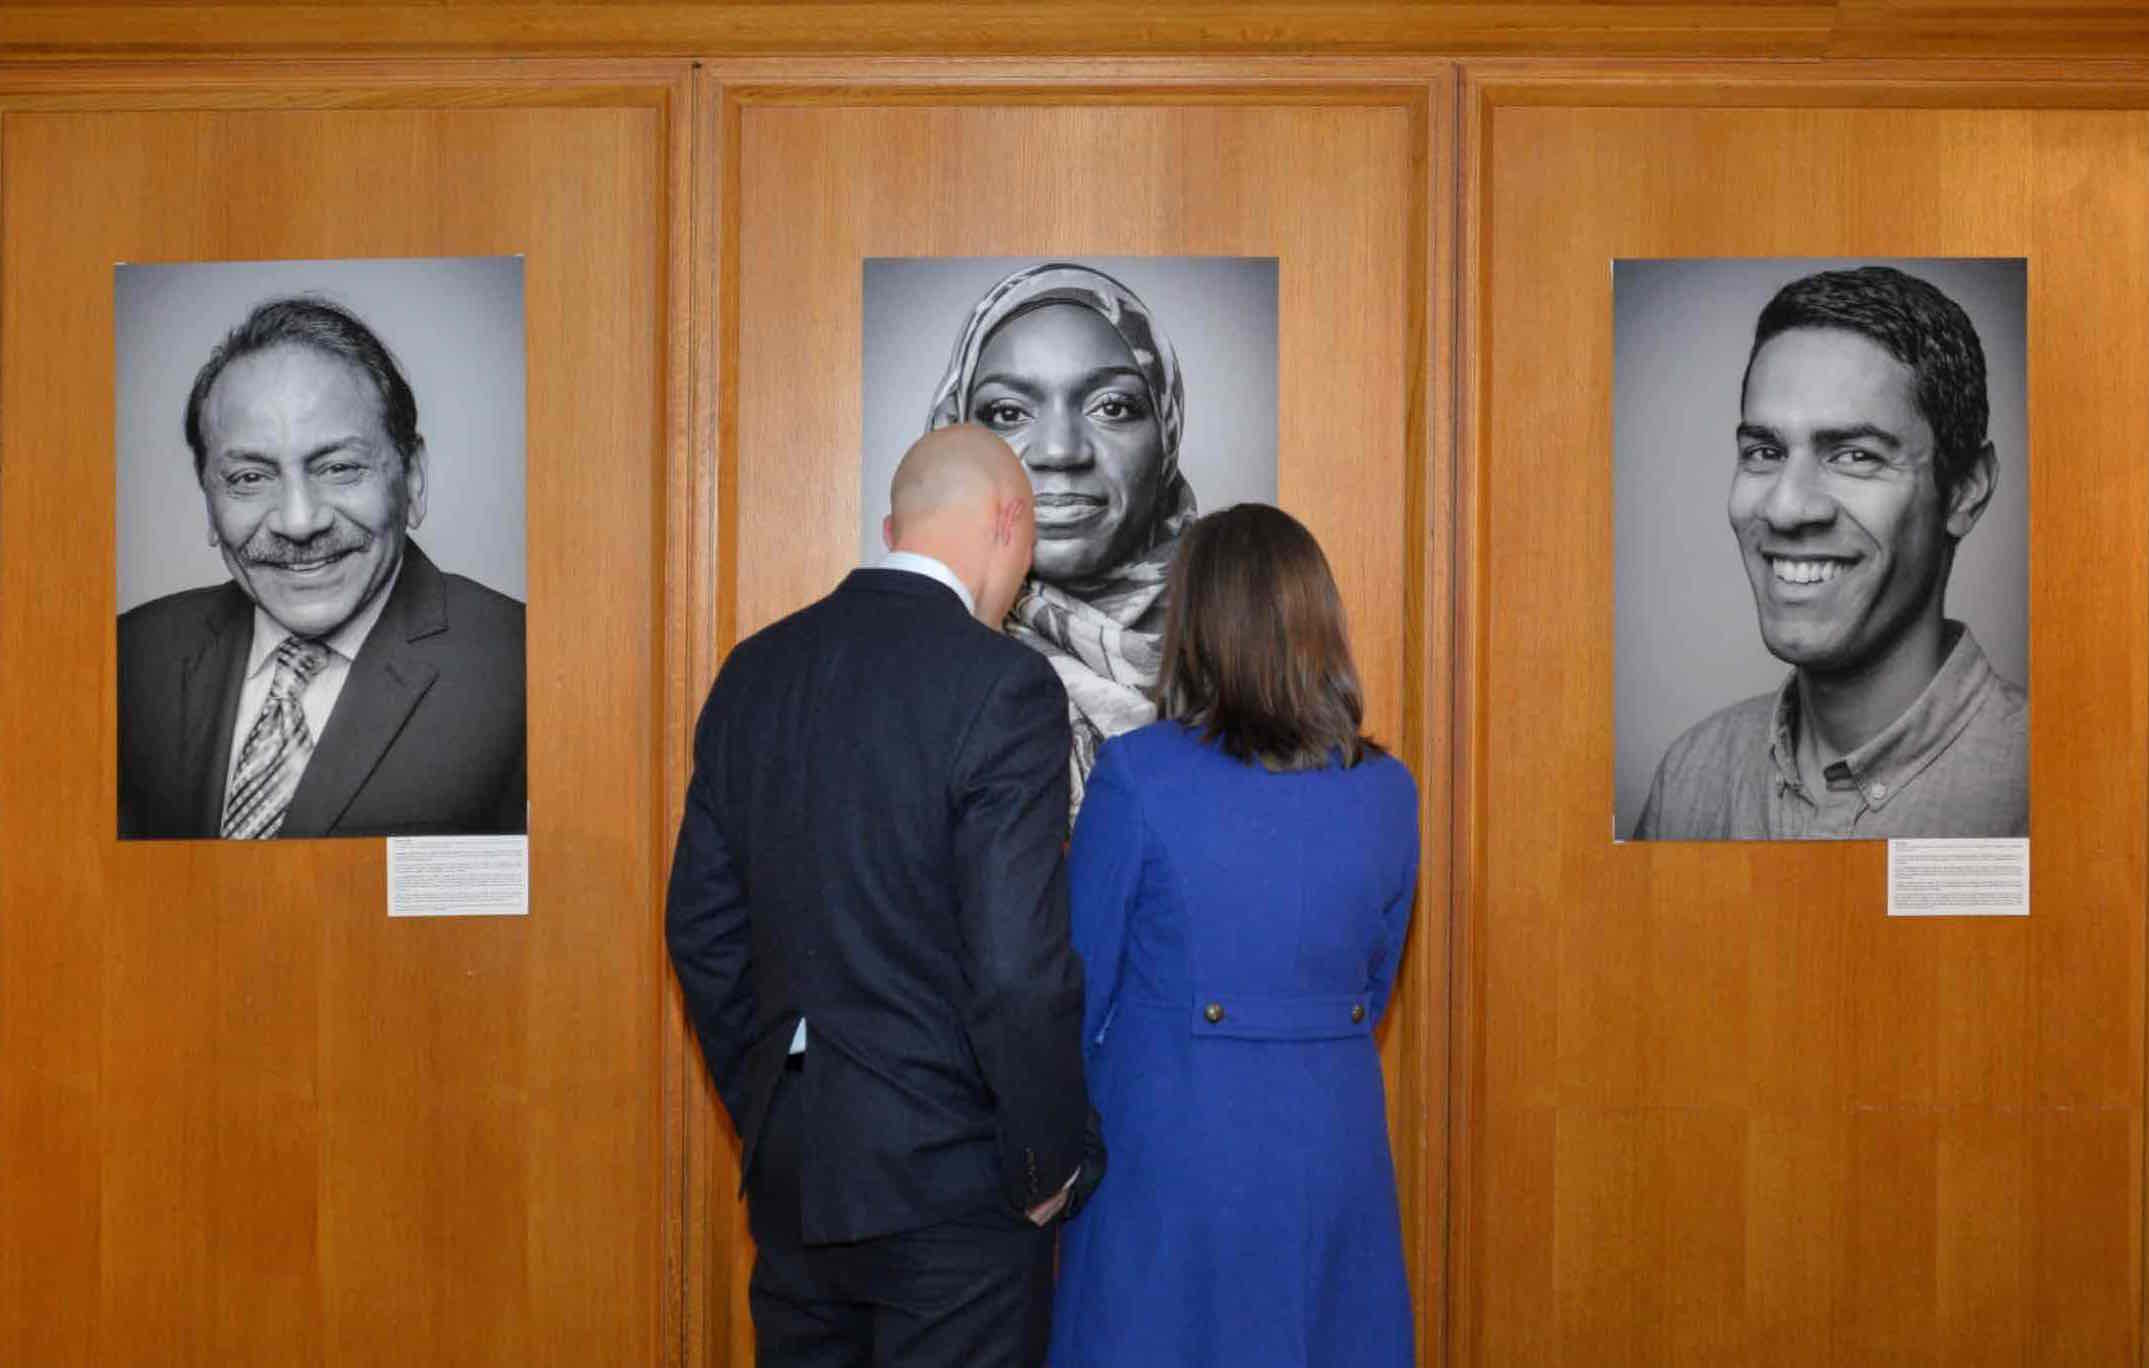 2 people looking at a photo narrative exhibit